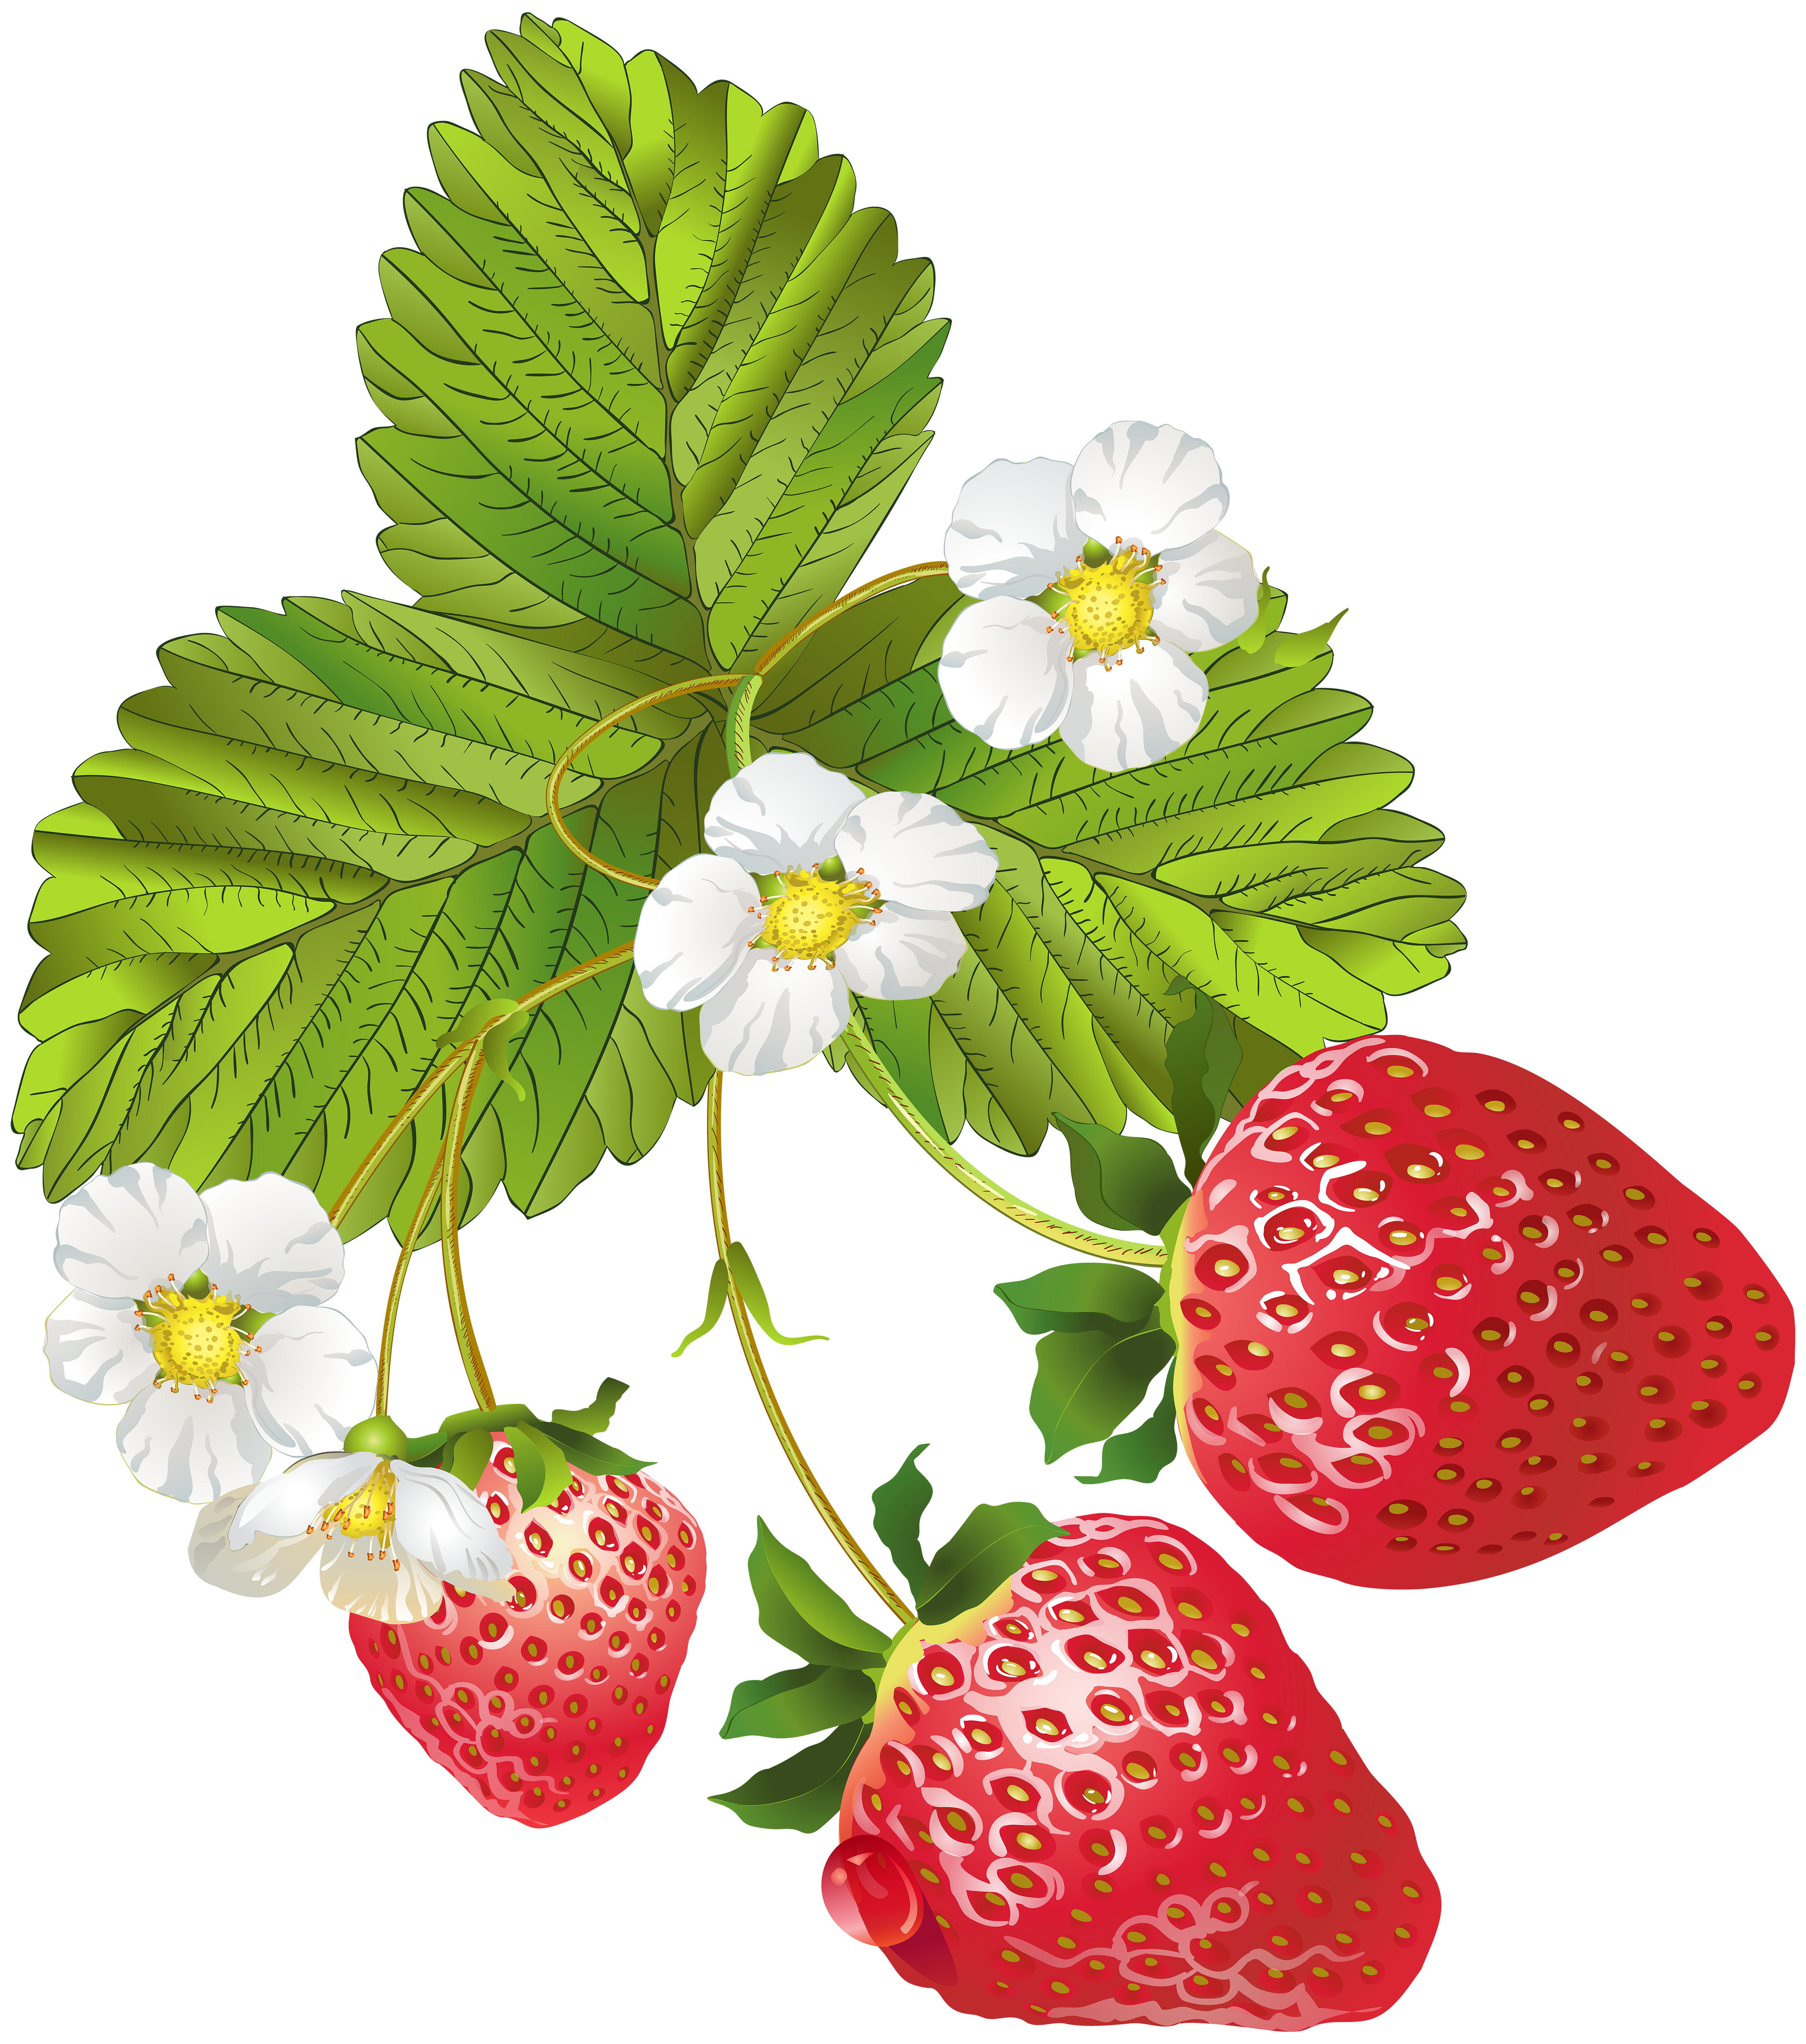 Strawberries clipart watermelon. Blooming png clip art